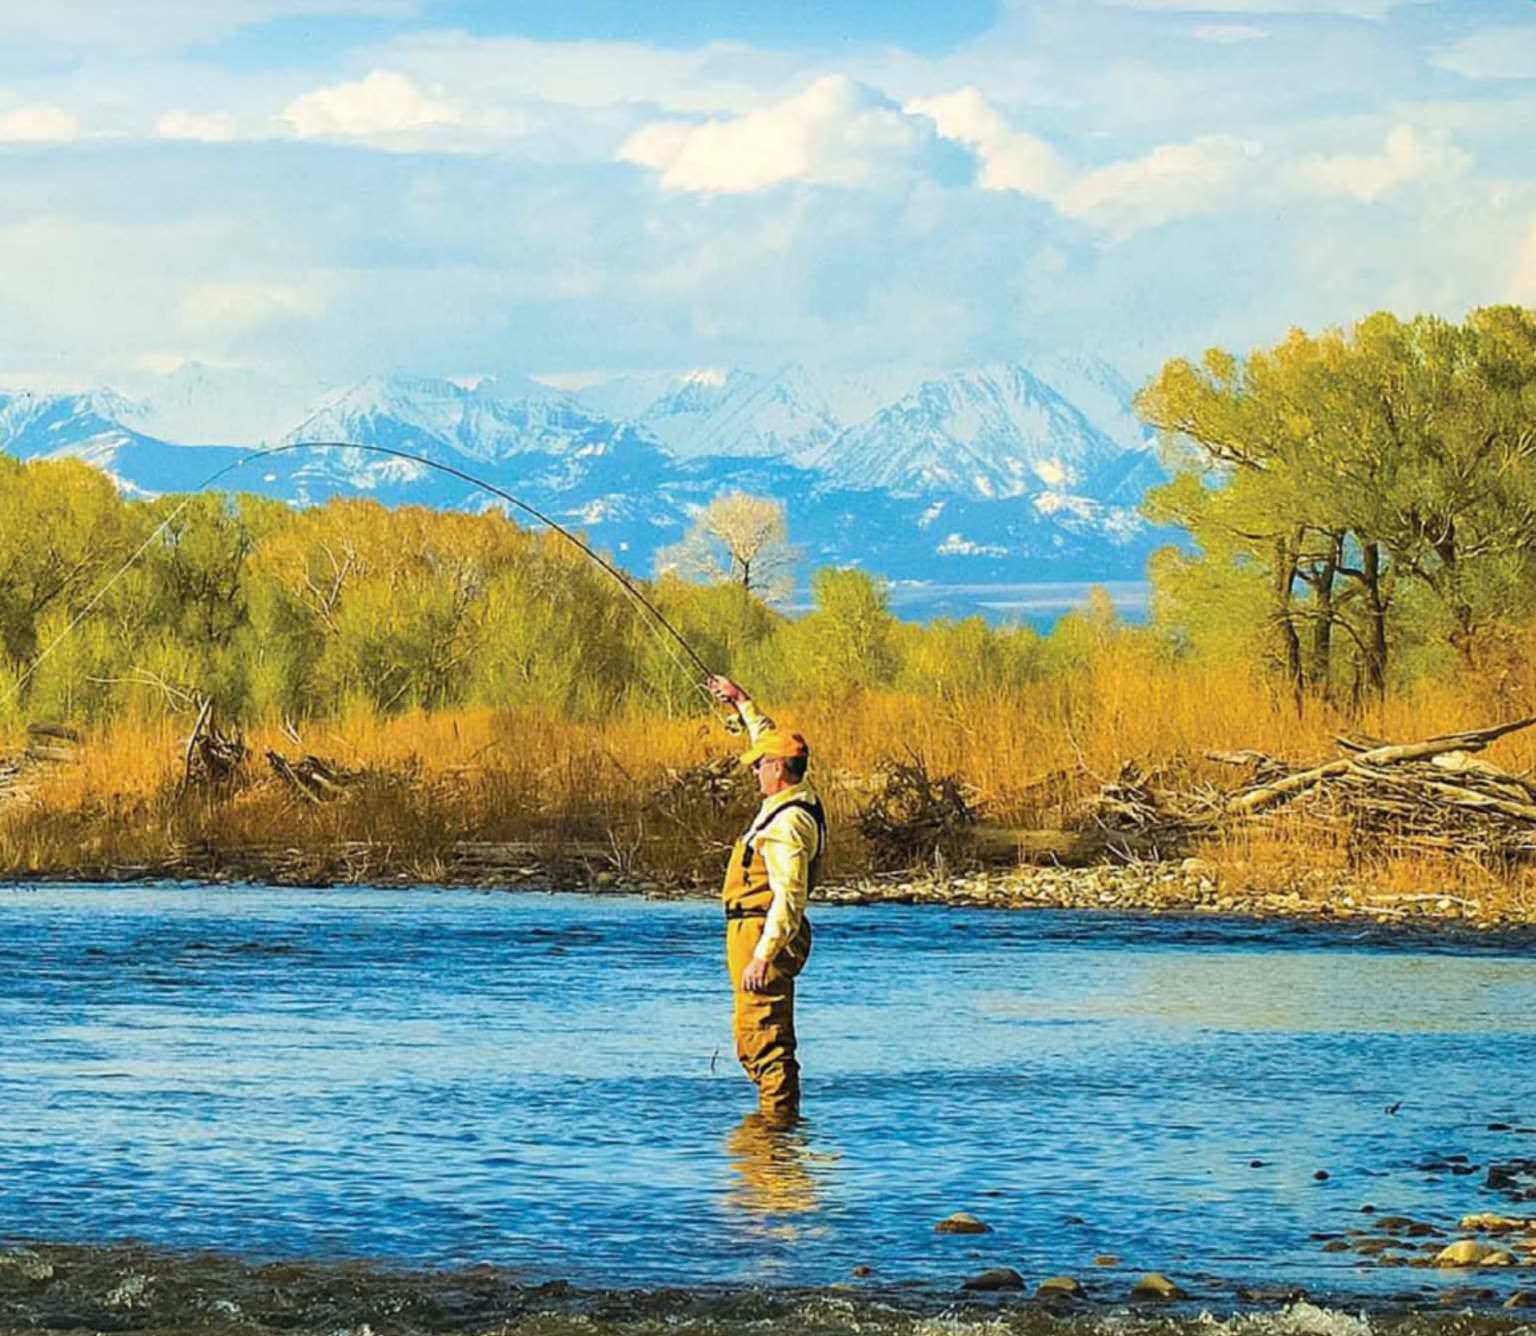 Trout Fishing Tips From An Expert